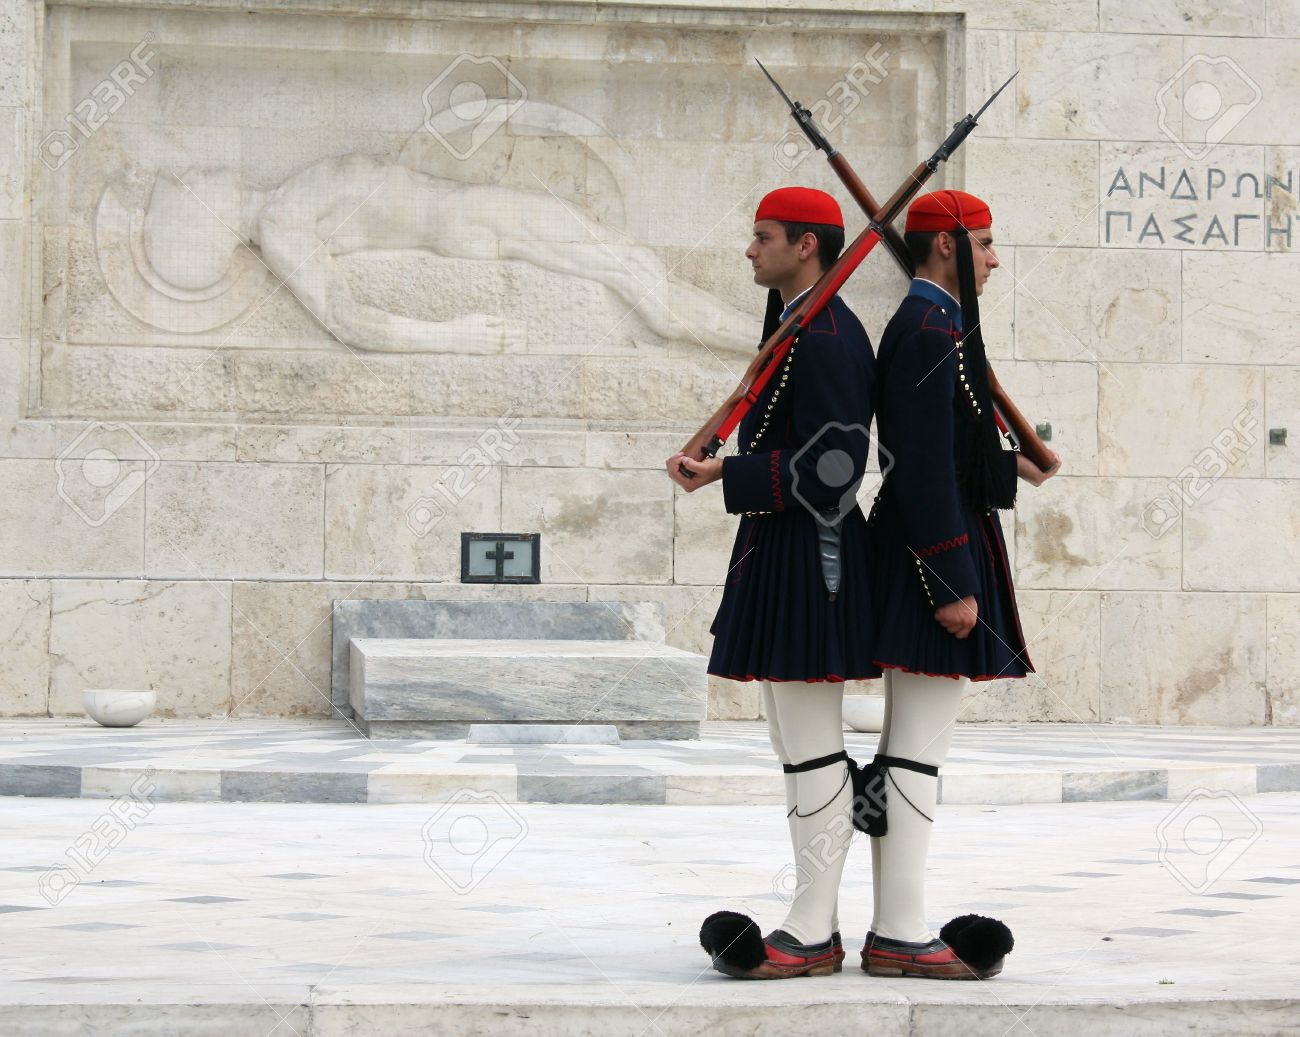 Athens, Greece - April 21, 2009: Evzones (palace ceremonial guards) in front of the Unknown Soldier's Tomb at the Greek Parliament Building in Athens, opposite Syntagma Square. Evzones guard the Tomb of the Unknown Soldier, the Hellenic Parliament and the Stock Photo - 6887642